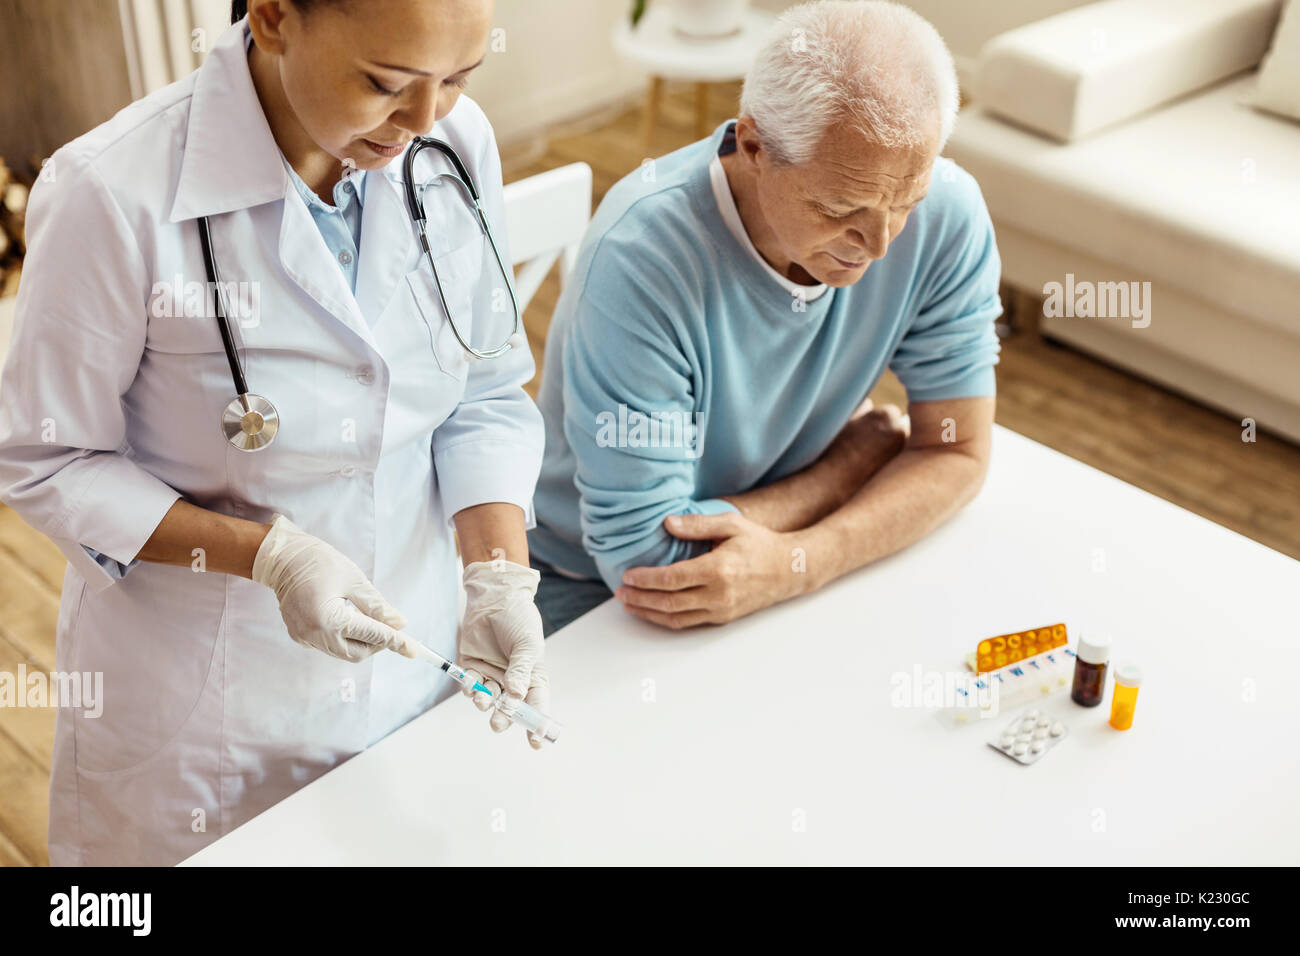 Serious experienced doctor preparing for an injection - Stock Image